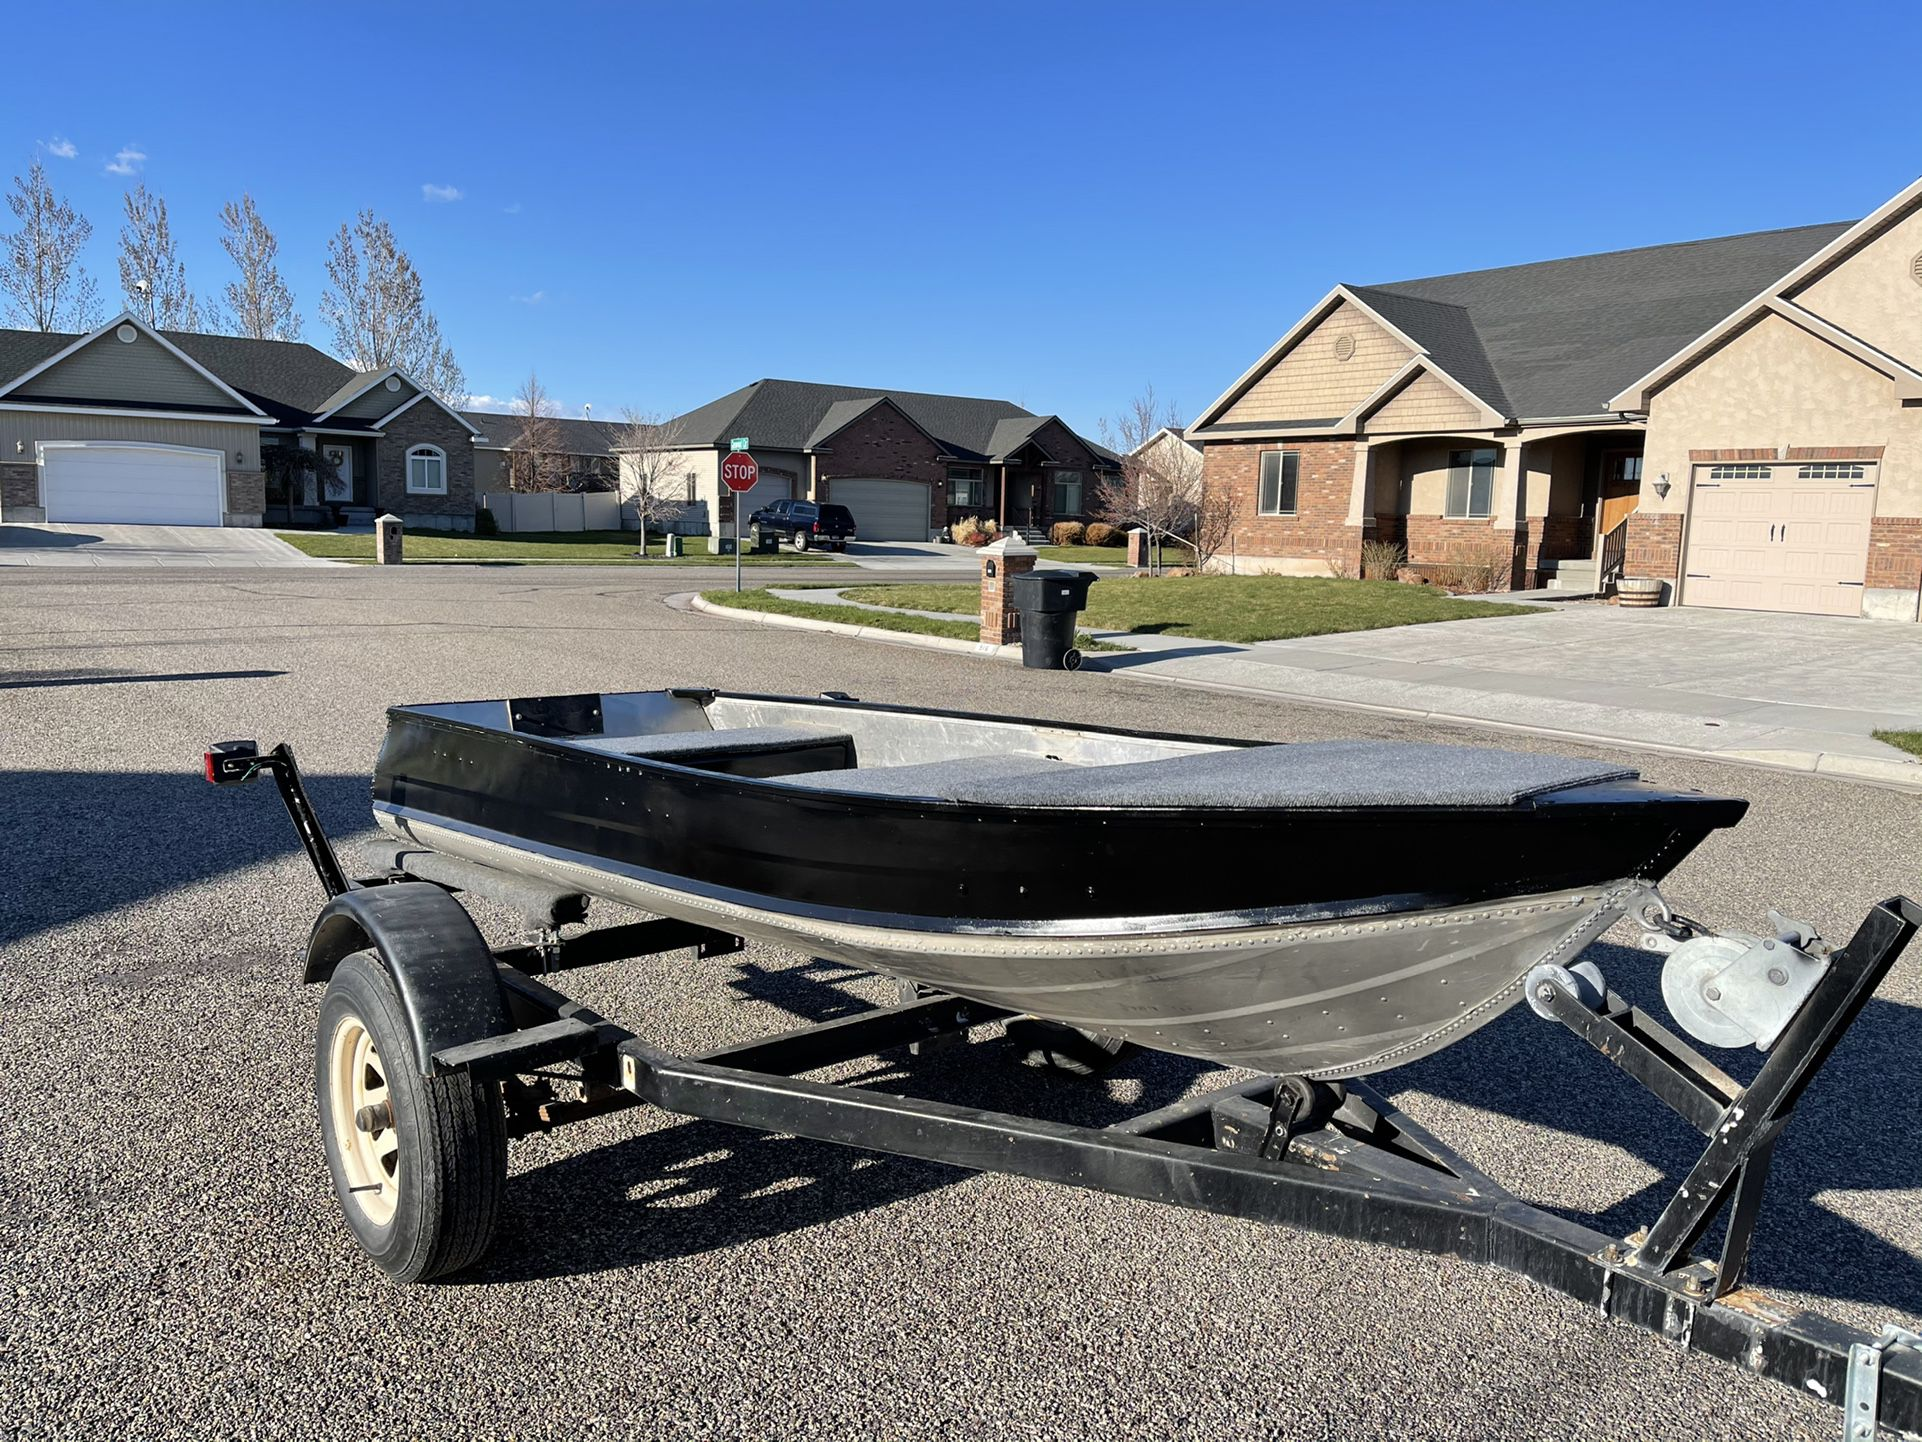 Photo 12ft Jon boat with trailer